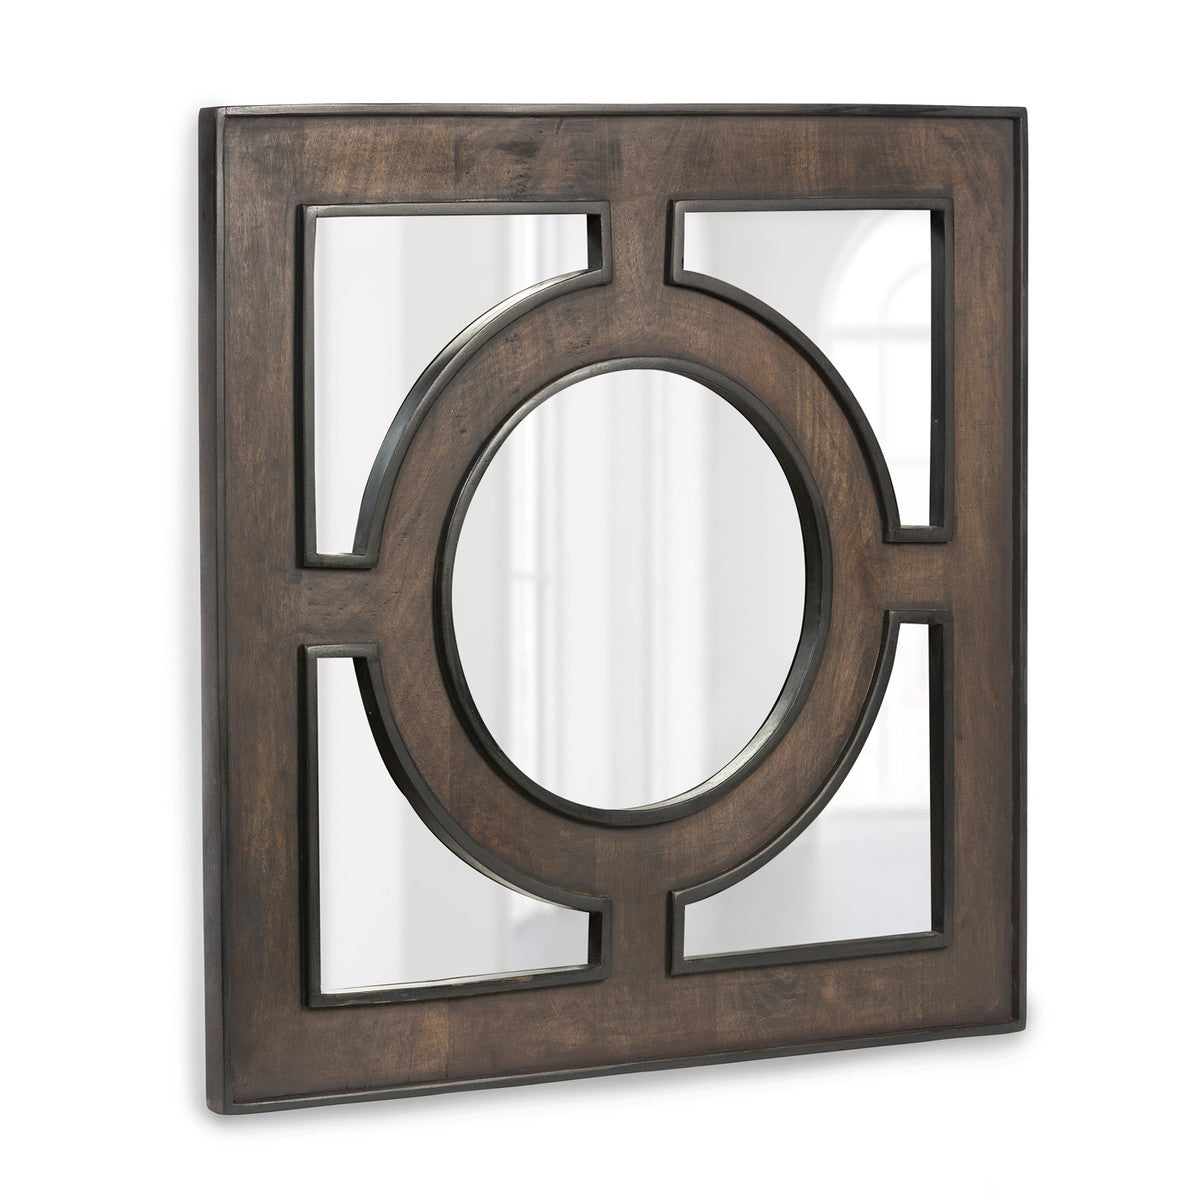 Wooden Portal Square Mirror